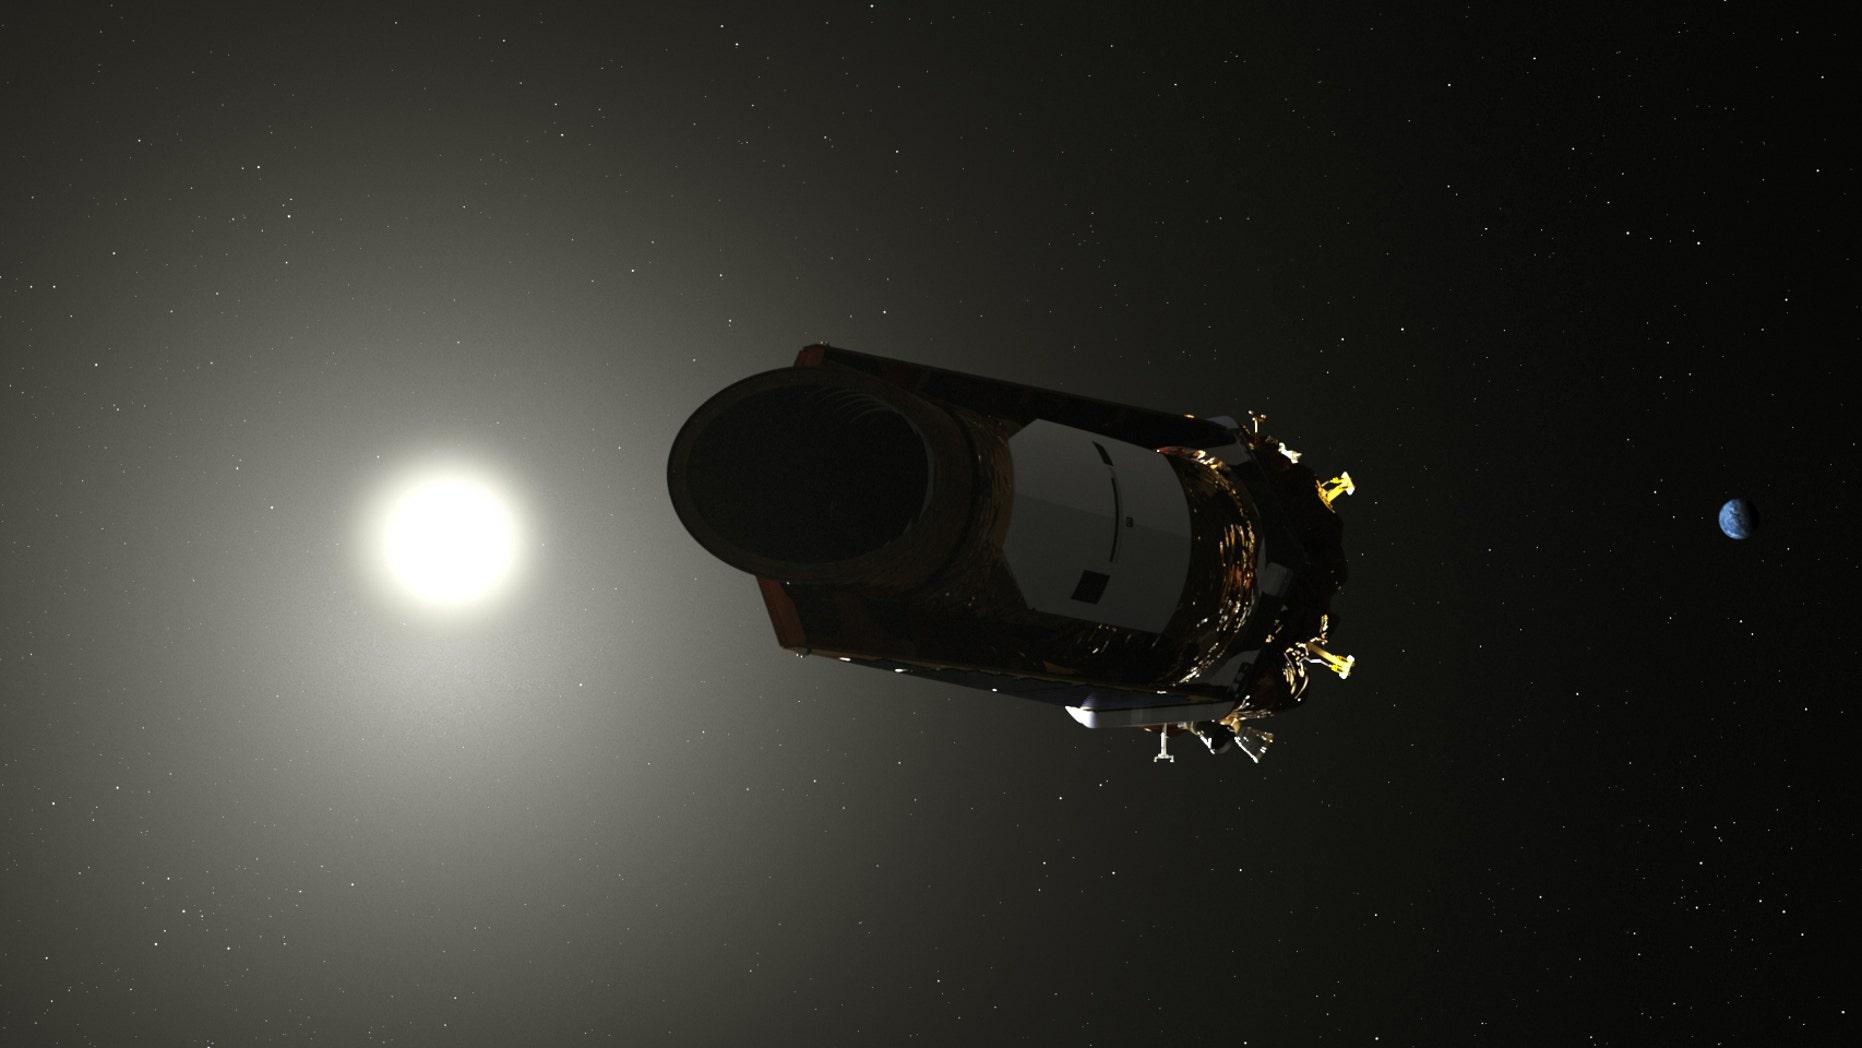 An artist's illustration of NASA's Kepler space telescope hunting for exoplanets.